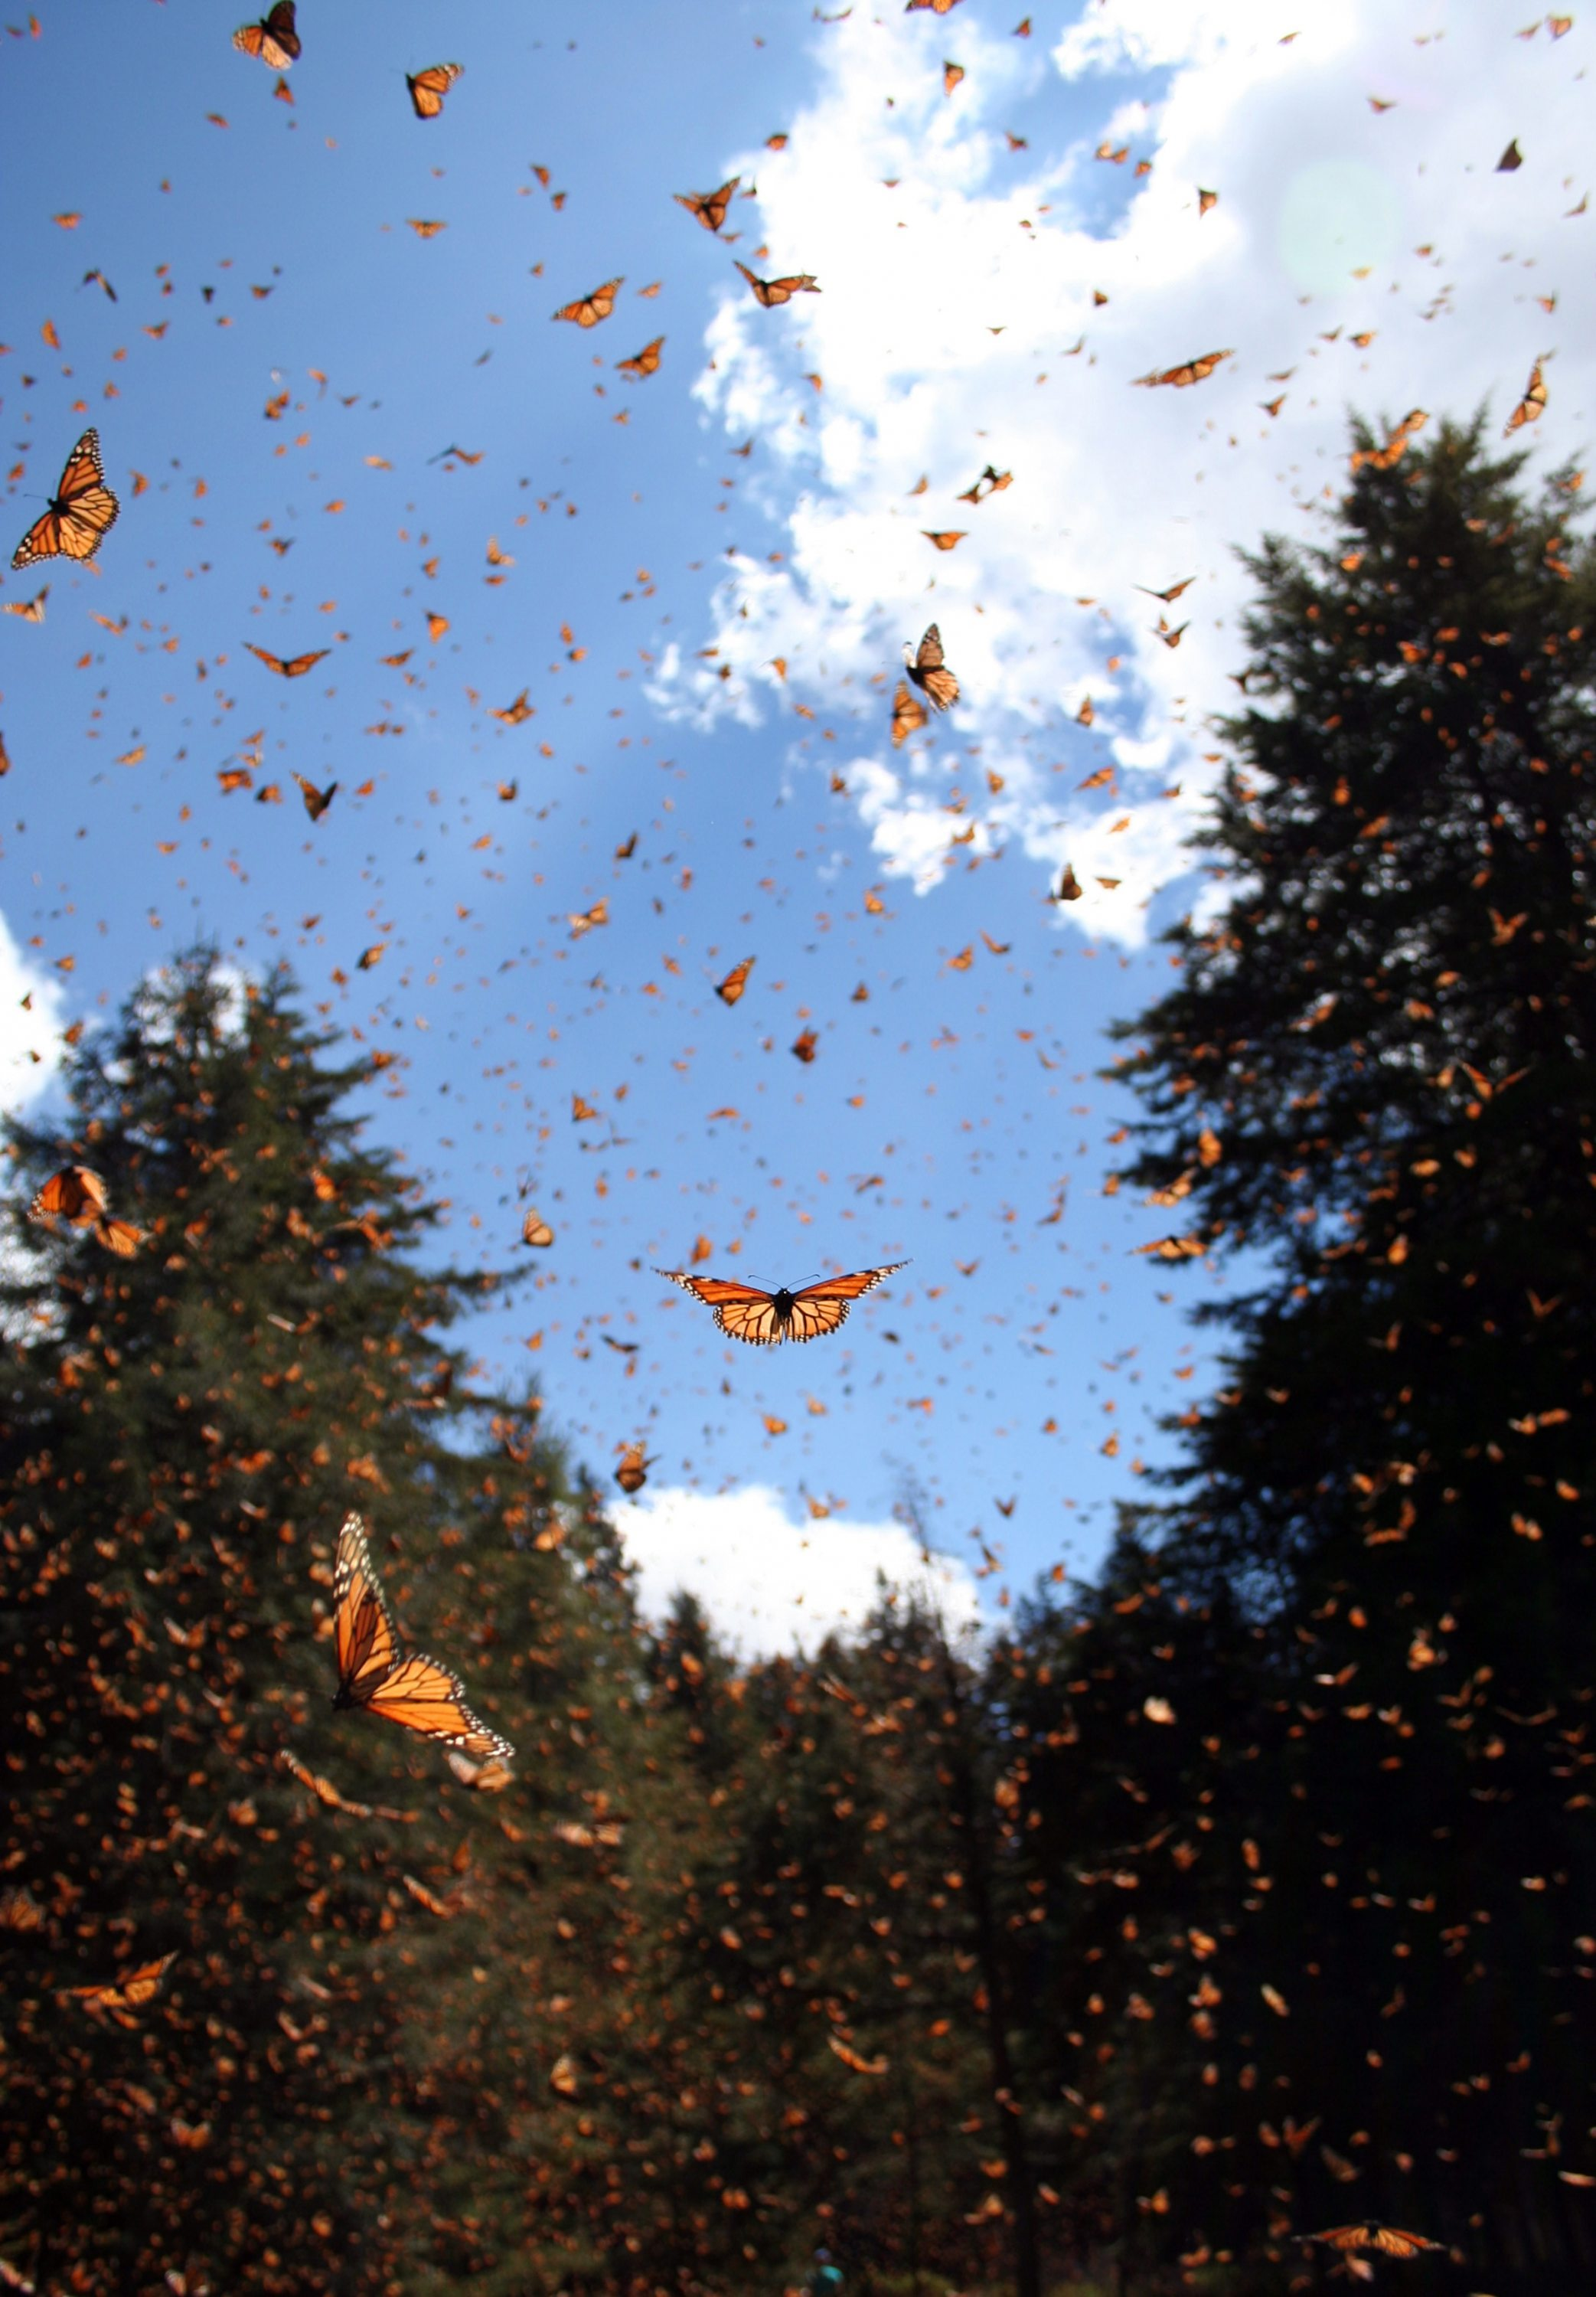 genetic secrets of the monarch butterfly revealed uchicago news